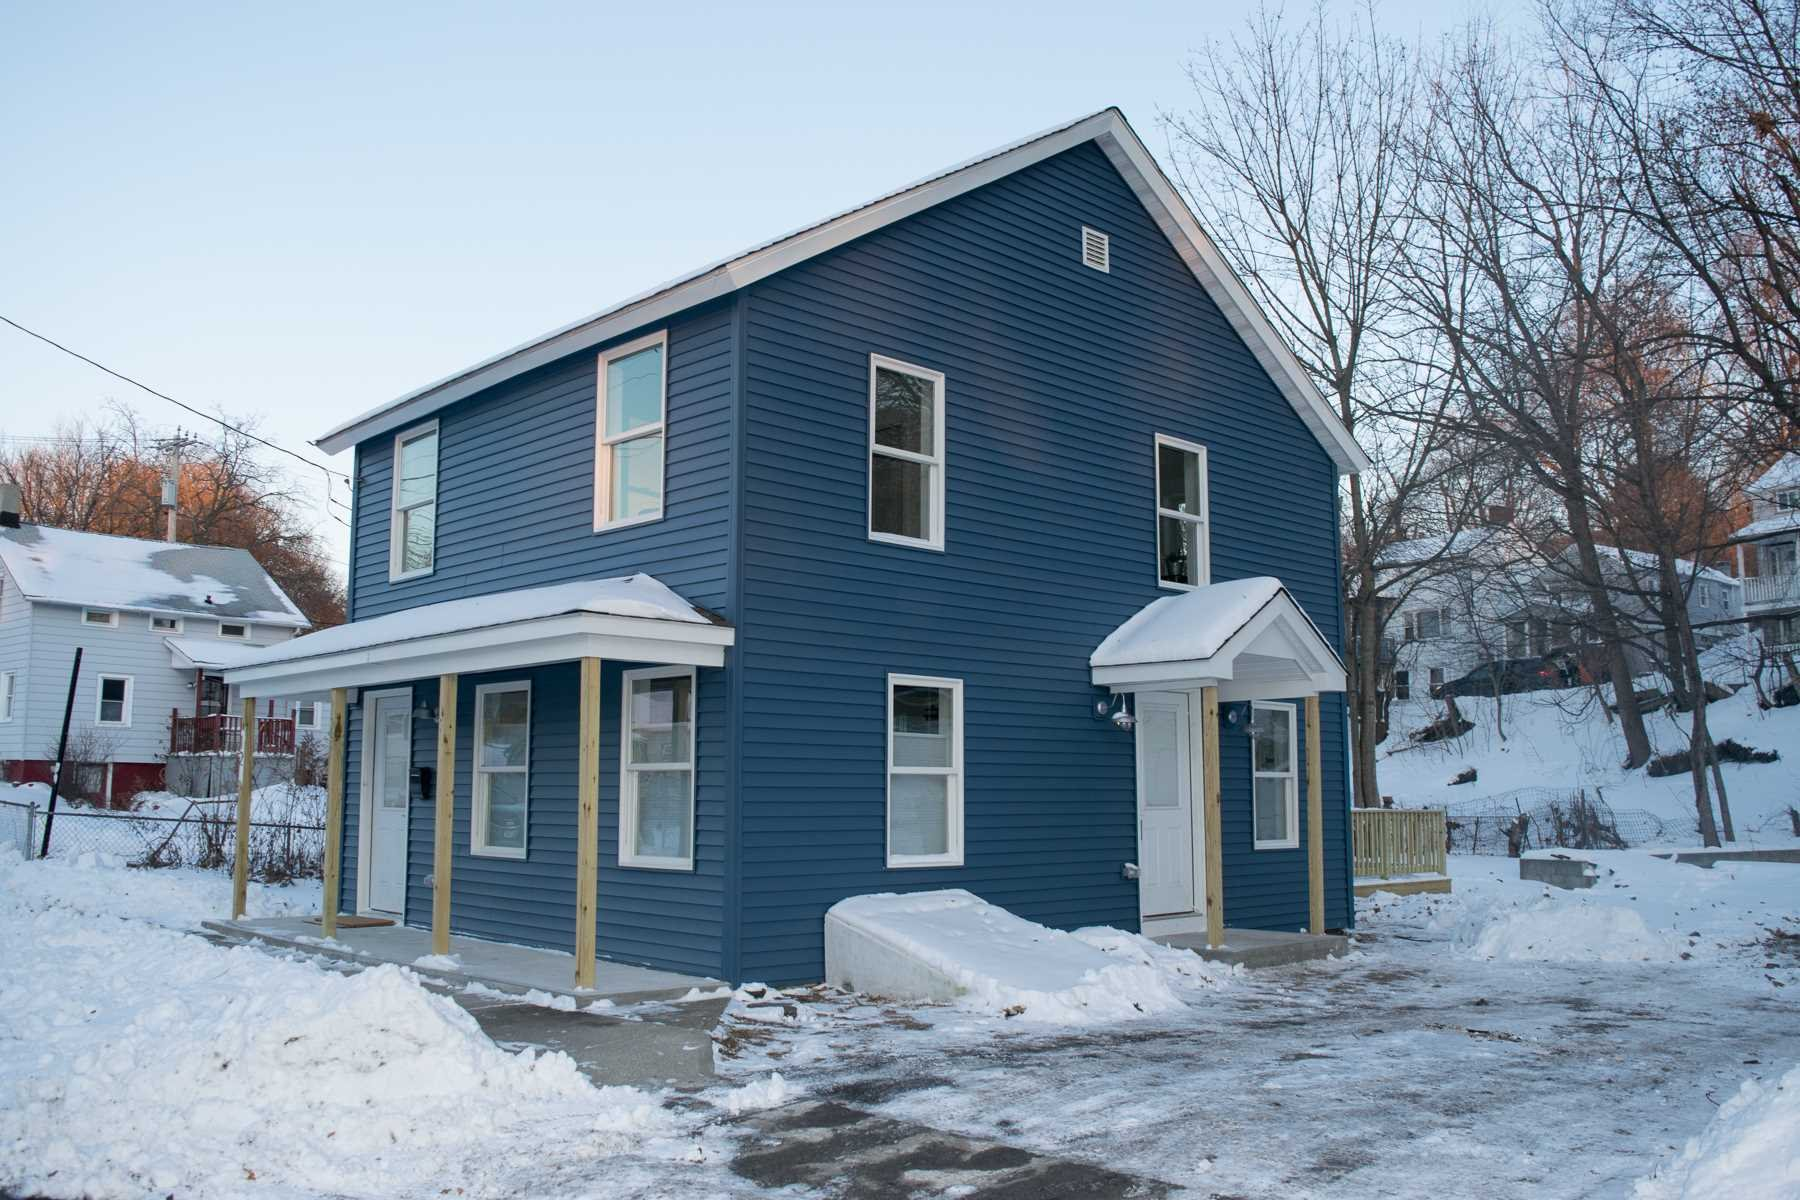 Single Family Home for Sale at 12 RUSSELL Avenue 12 RUSSELL Avenue Beacon, New York 12508 United States